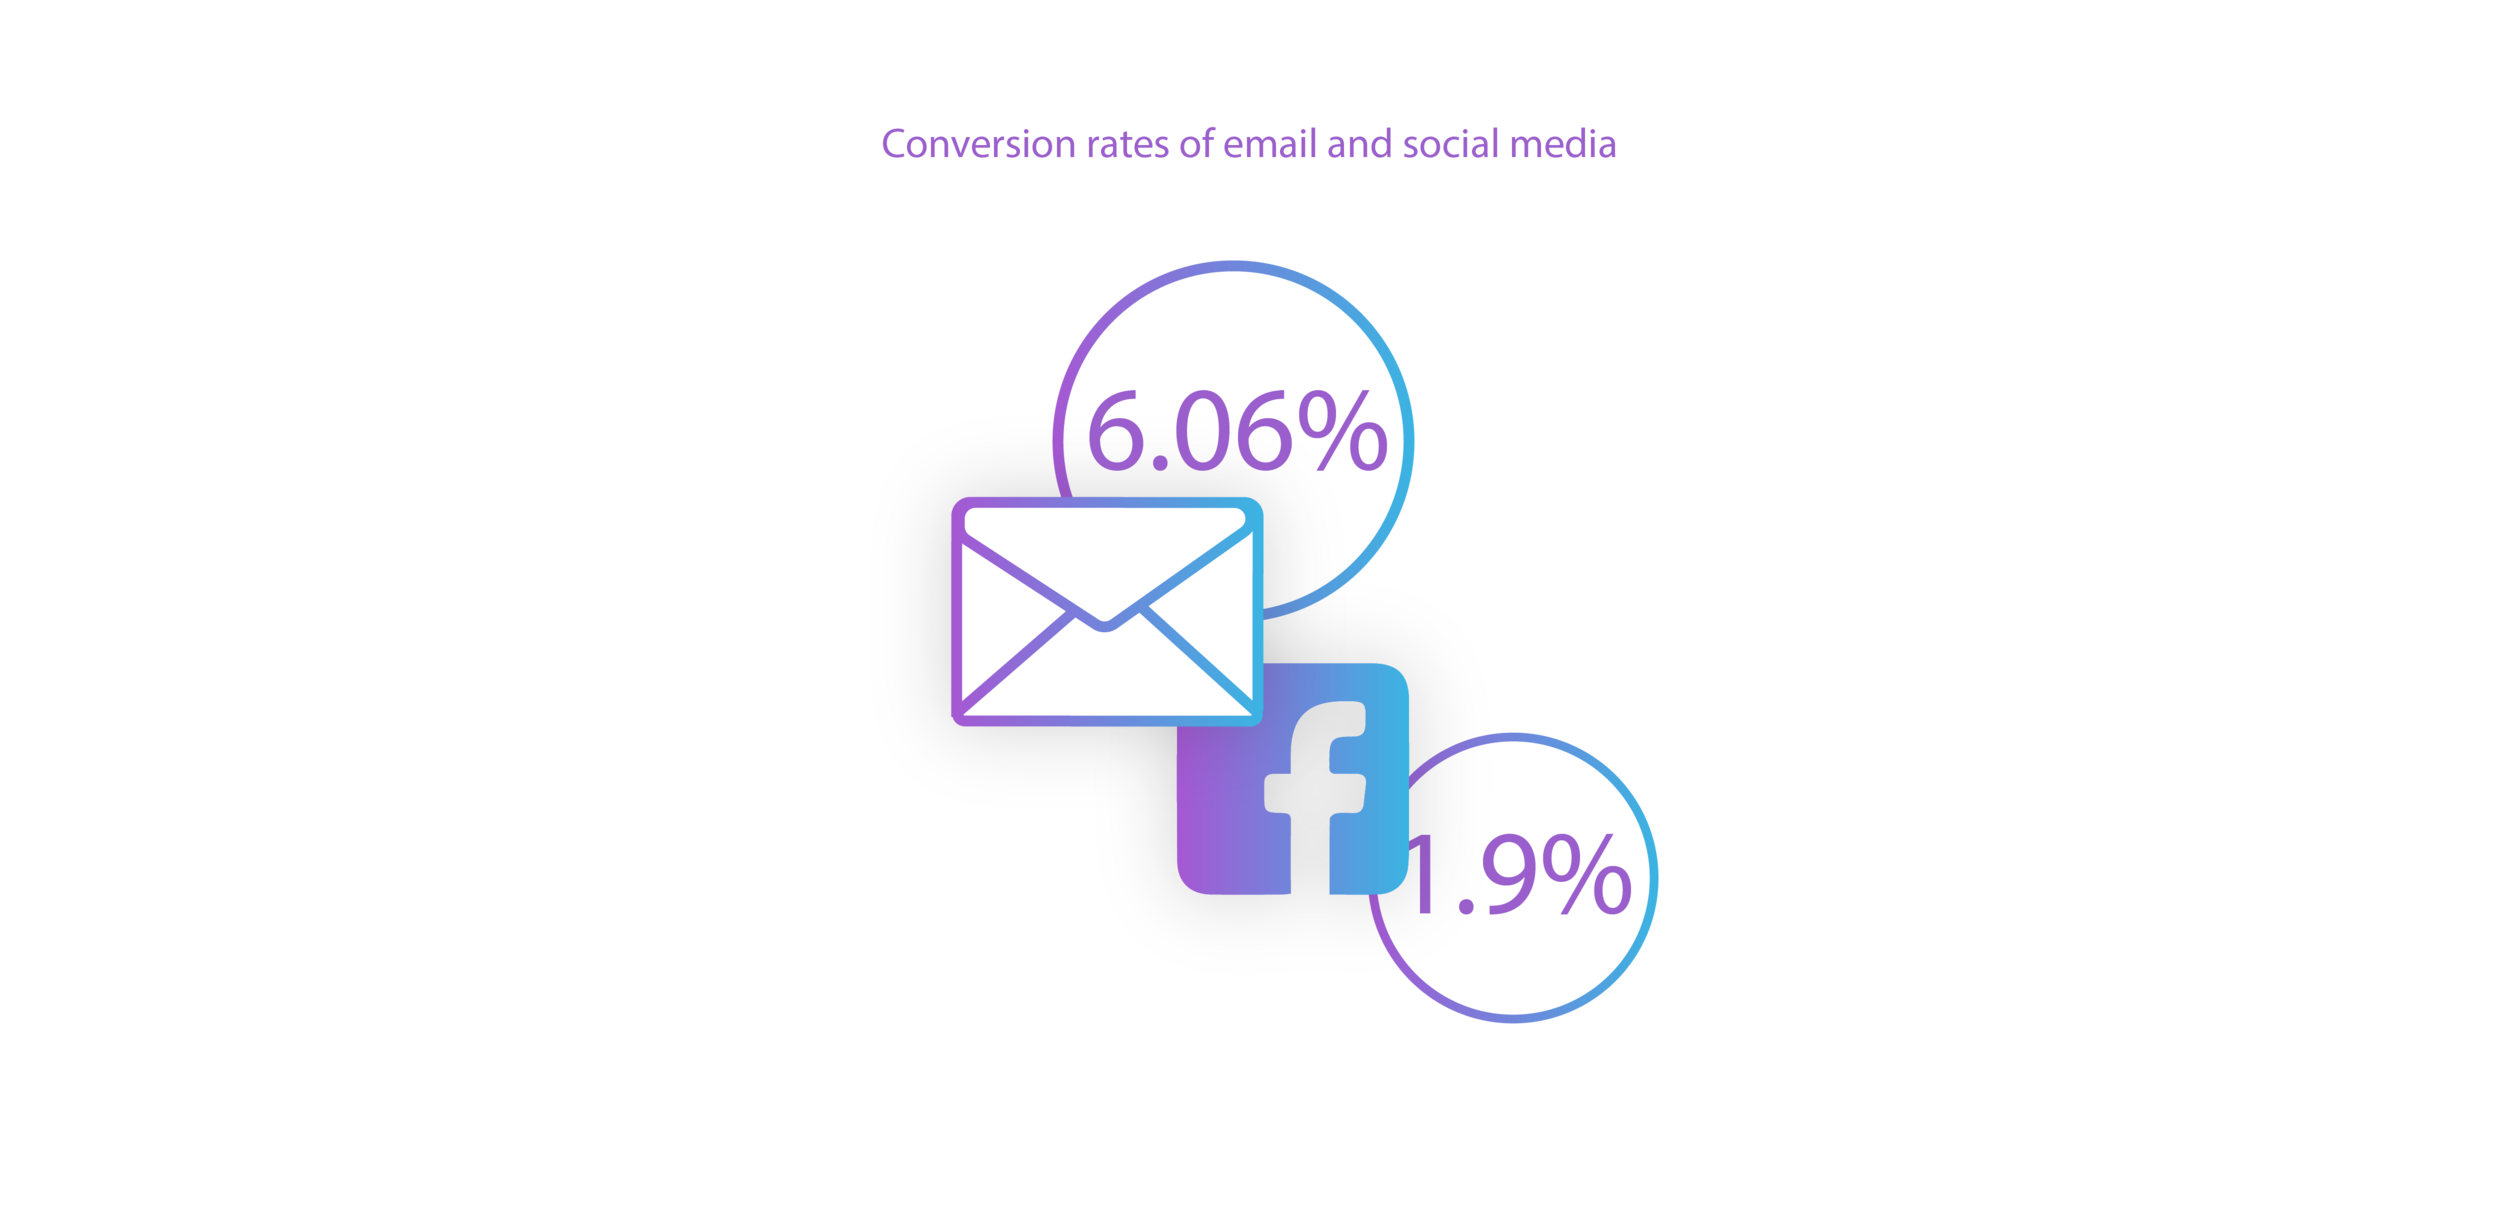 Infographic showing conversion rates of email and social media marketing  – 6.06% for email, 1.9% for social.